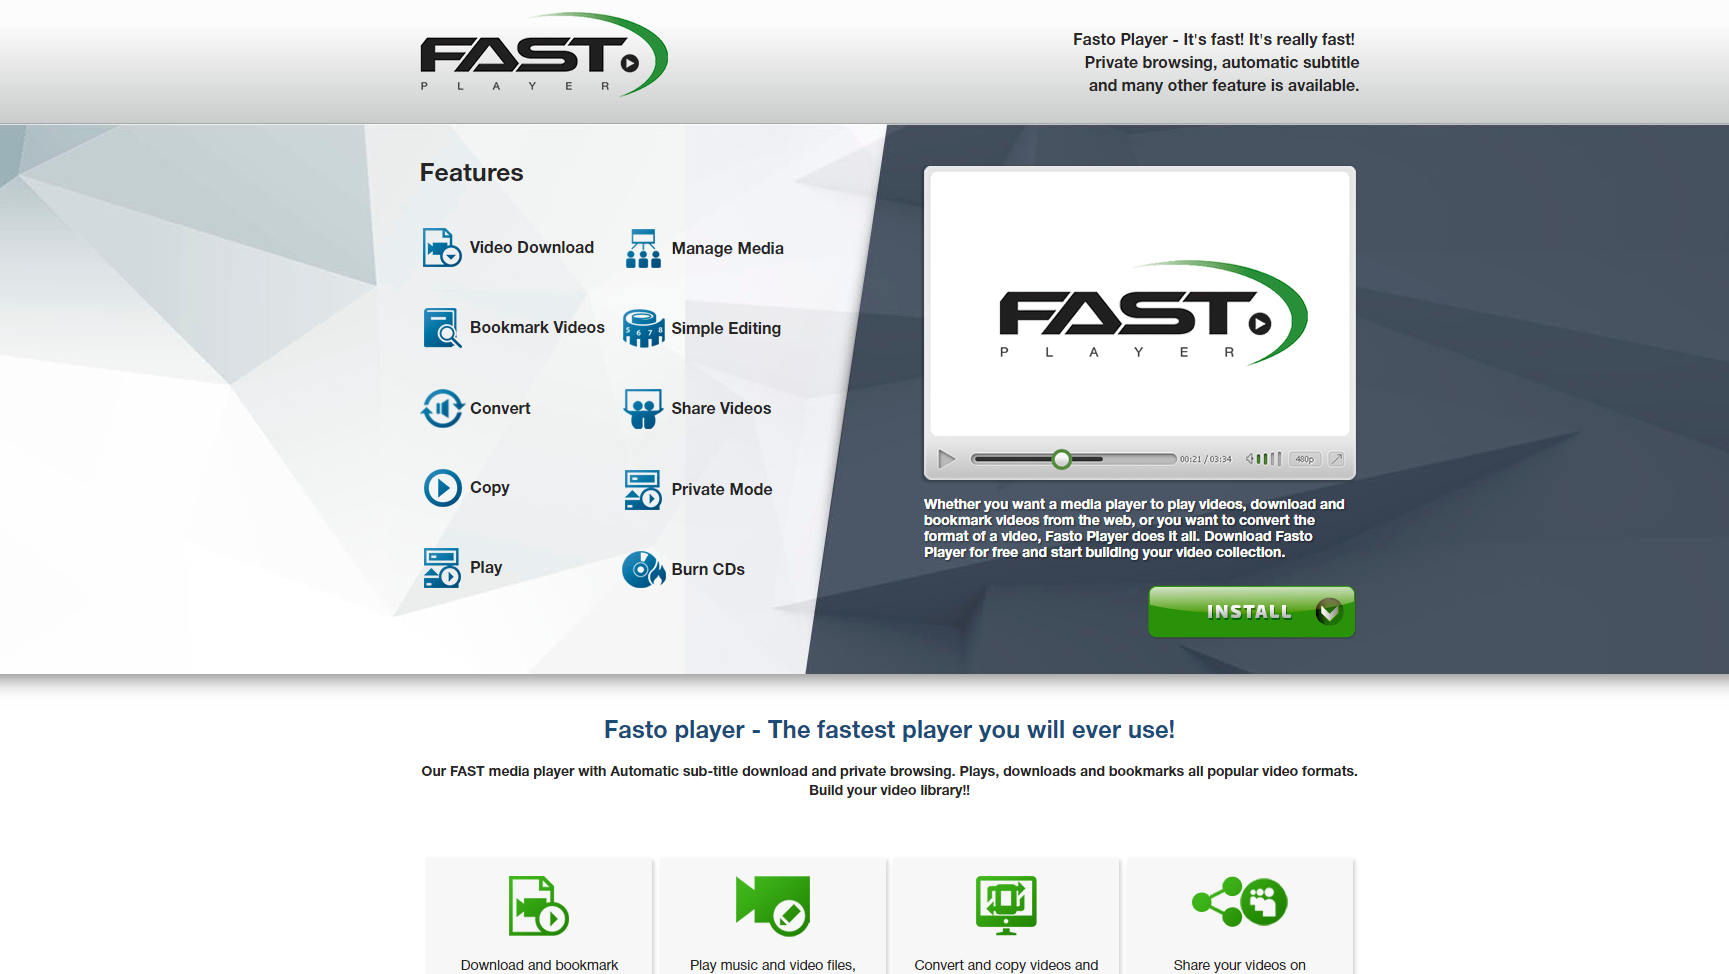 Fasto Player Ads